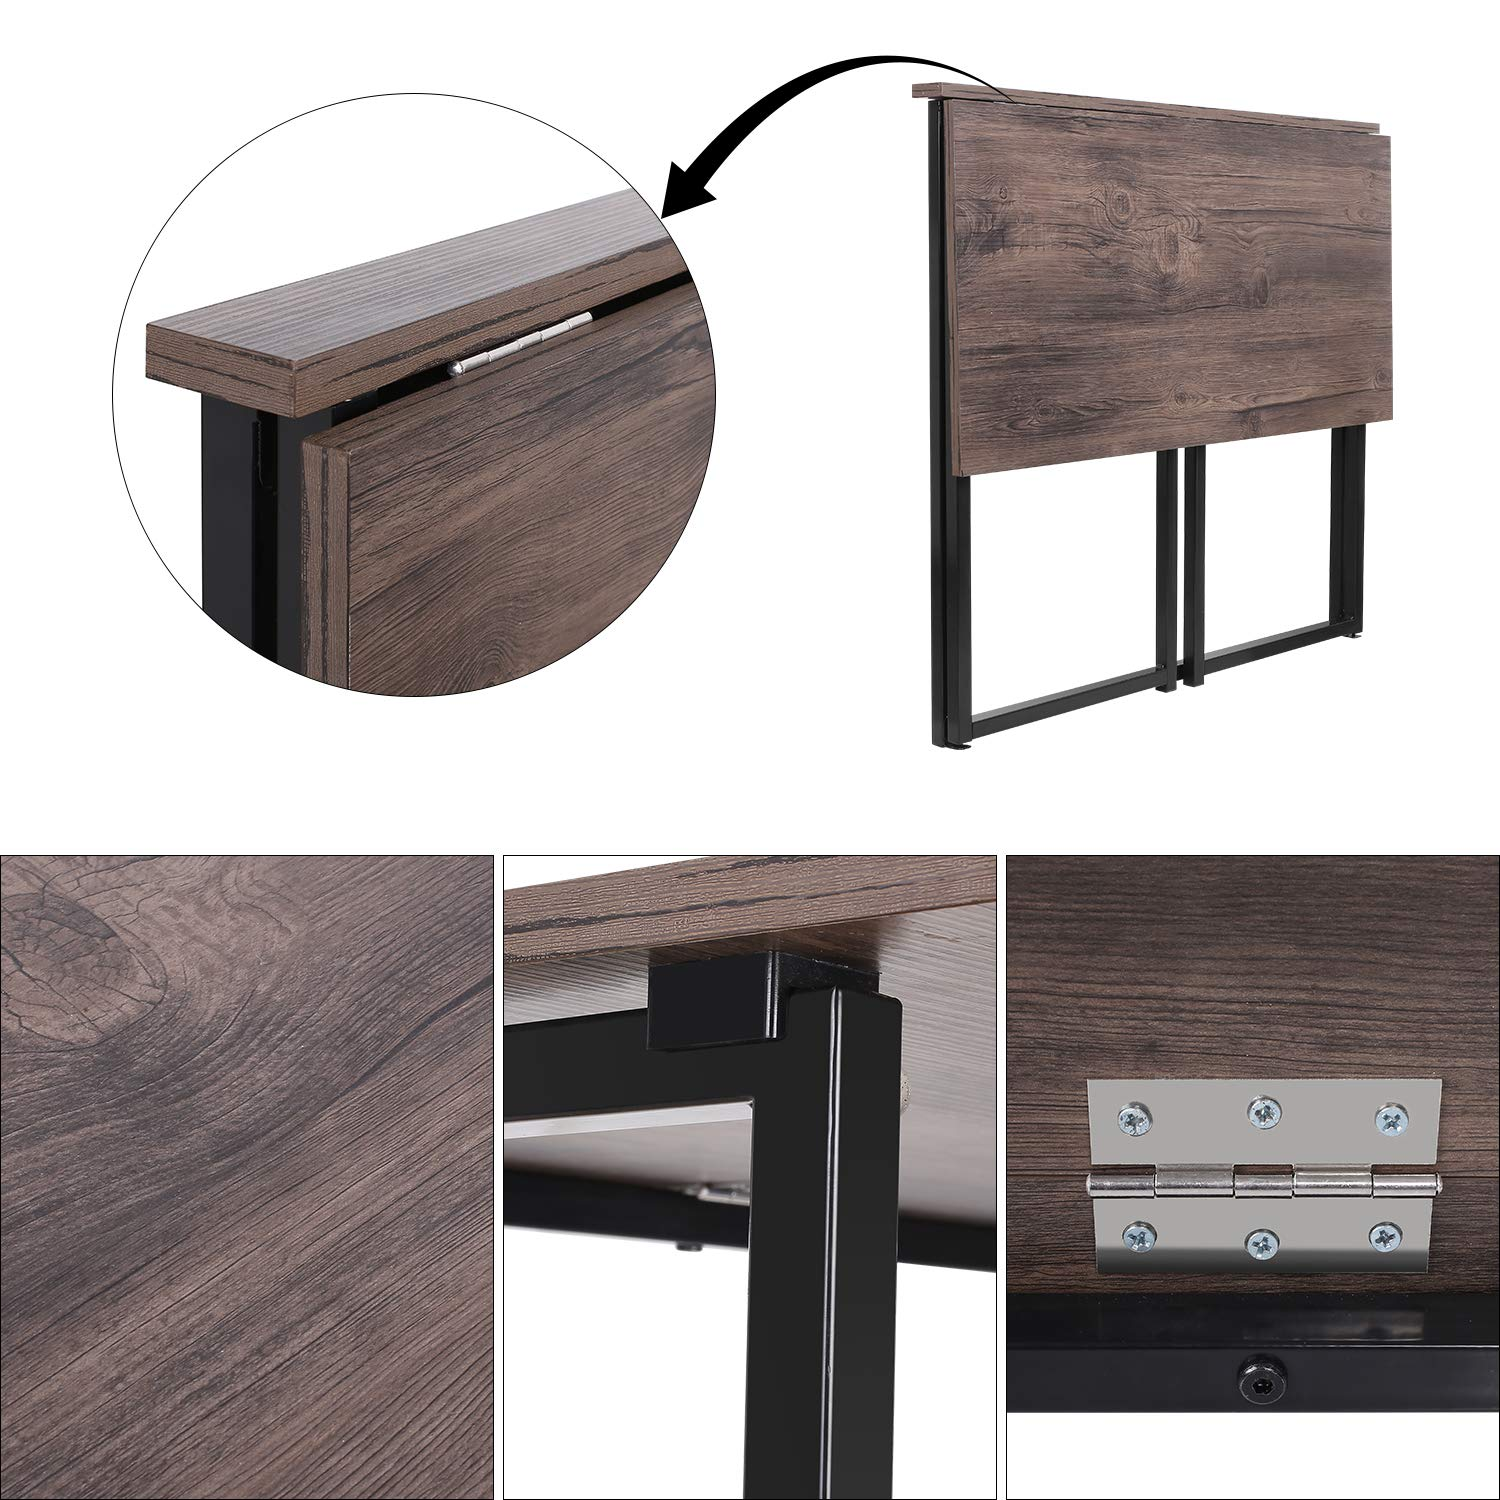 HOMFA Folding Laptop Table, Writing Computer Notebook Desk, Modern Simple Industrial Style TV Tray Bed/Sofa Side Study Table, Space Saving Furniture for Home Office by Homfa (Image #3)